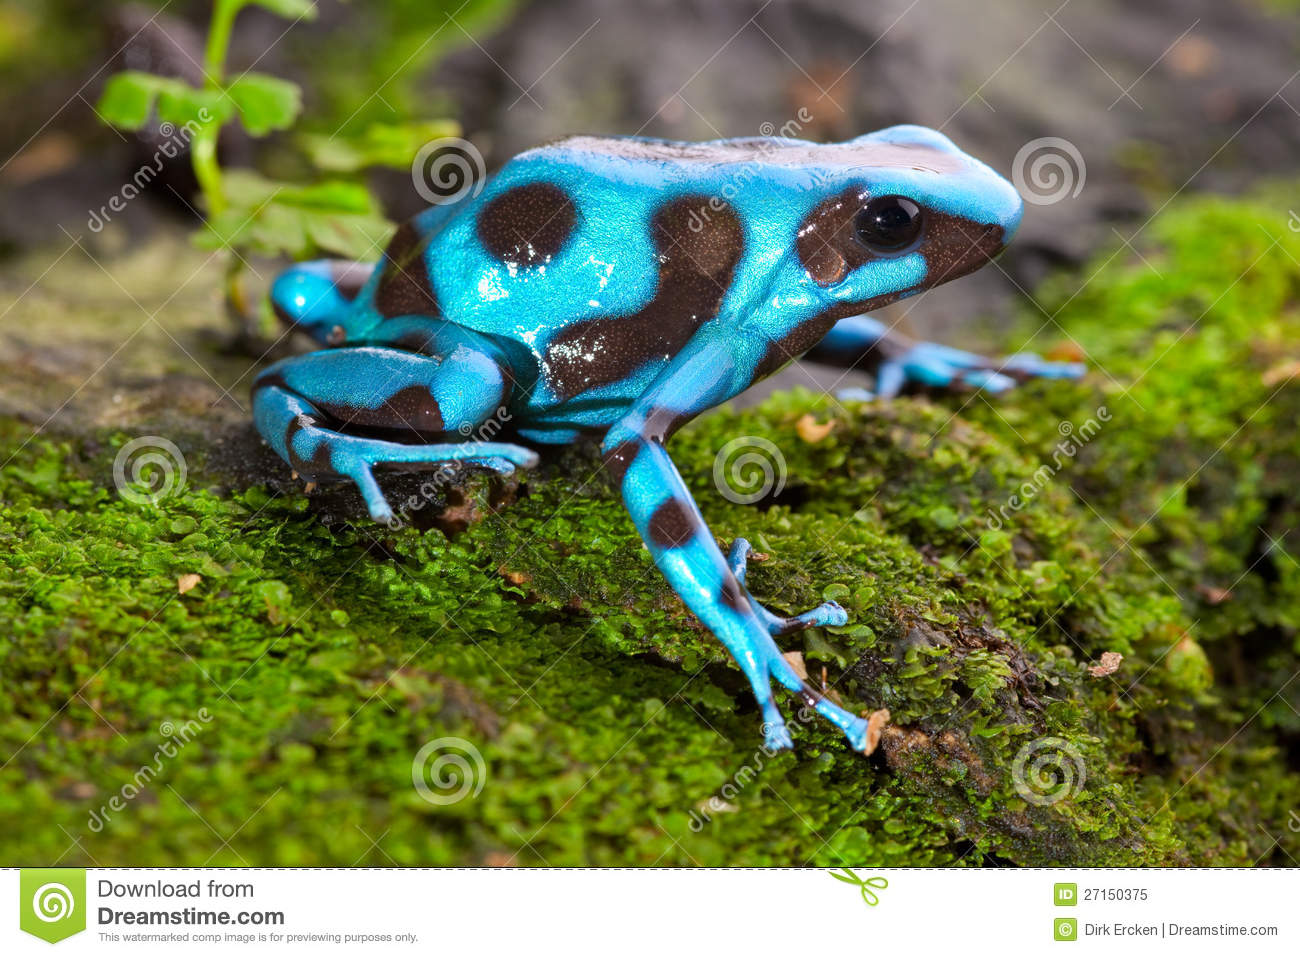 Frog hibian in female colombian horned frog, hibians can disqus